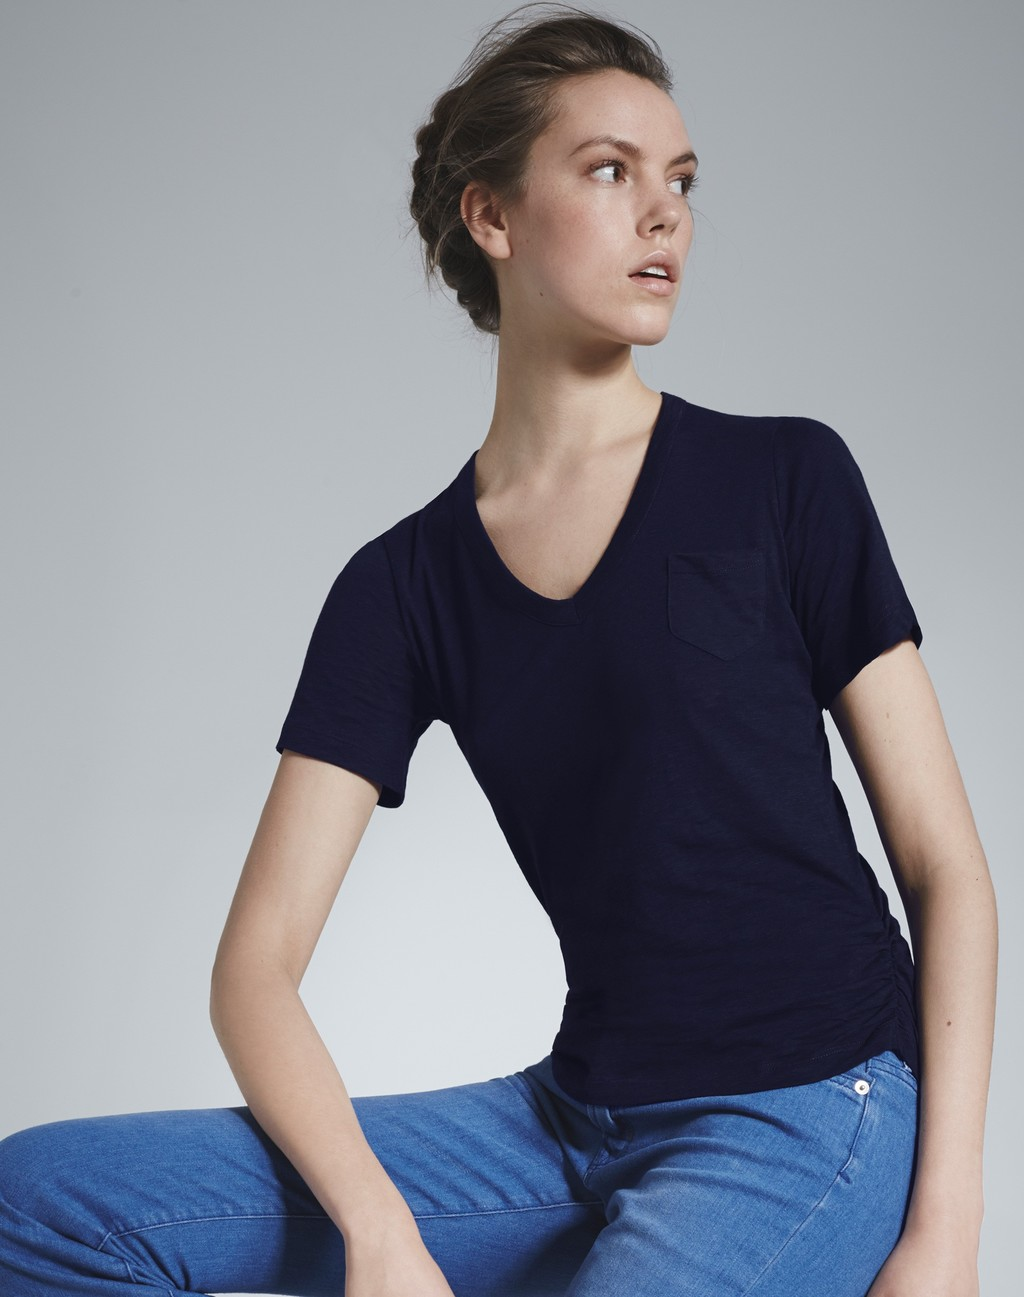 The Perfect V Neck Tee Navy - neckline: v-neck; pattern: plain; style: t-shirt; predominant colour: navy; occasions: casual; length: standard; fibres: cotton - stretch; fit: body skimming; sleeve length: short sleeve; sleeve style: standard; texture group: jersey - clingy; pattern type: fabric; season: s/s 2016; wardrobe: basic